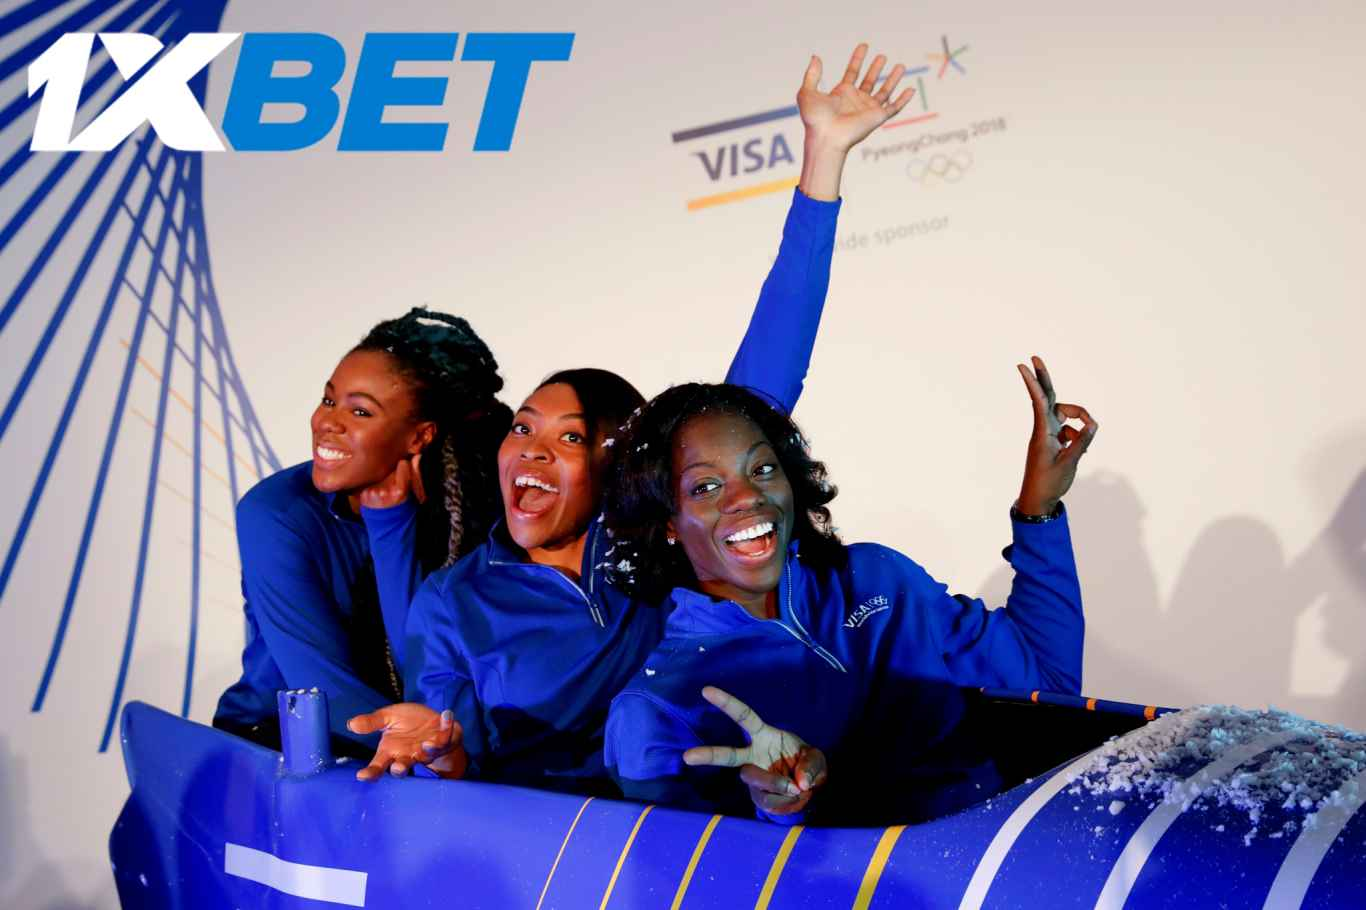 1xBet Review in Nigeria